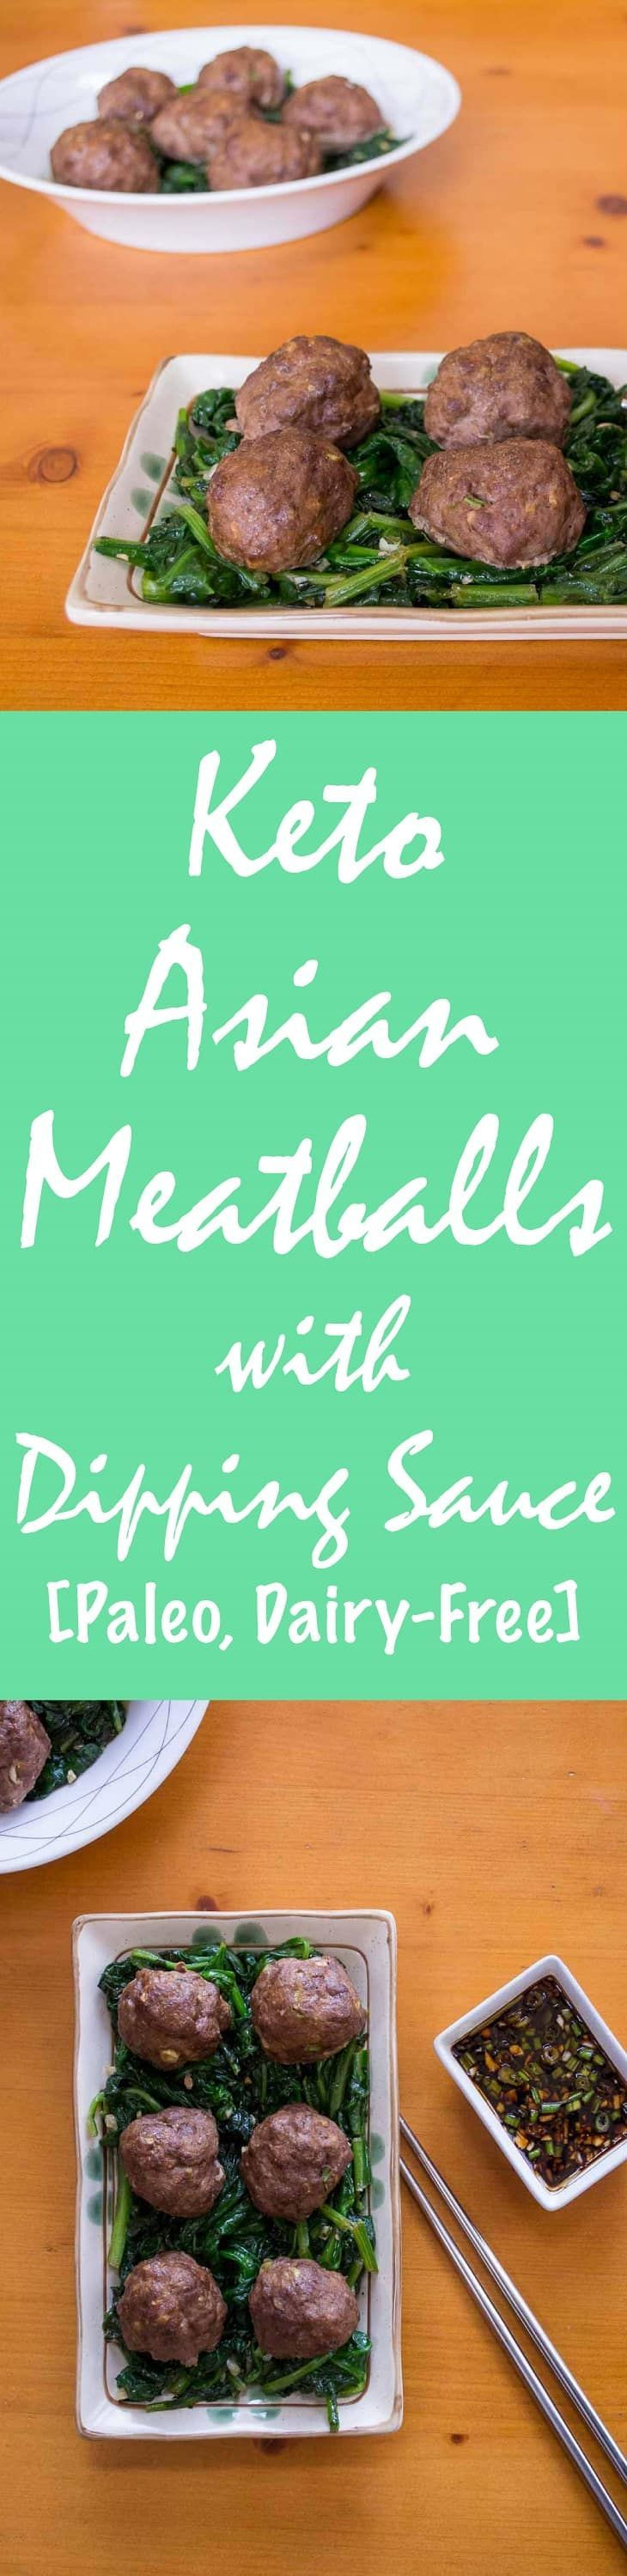 Get this list of Keto Asian Meatballs Recipe with Dipping Sauce [Paleo, Dairy-Free] here. Includes beautiful photos and printable step-by-step instructions.